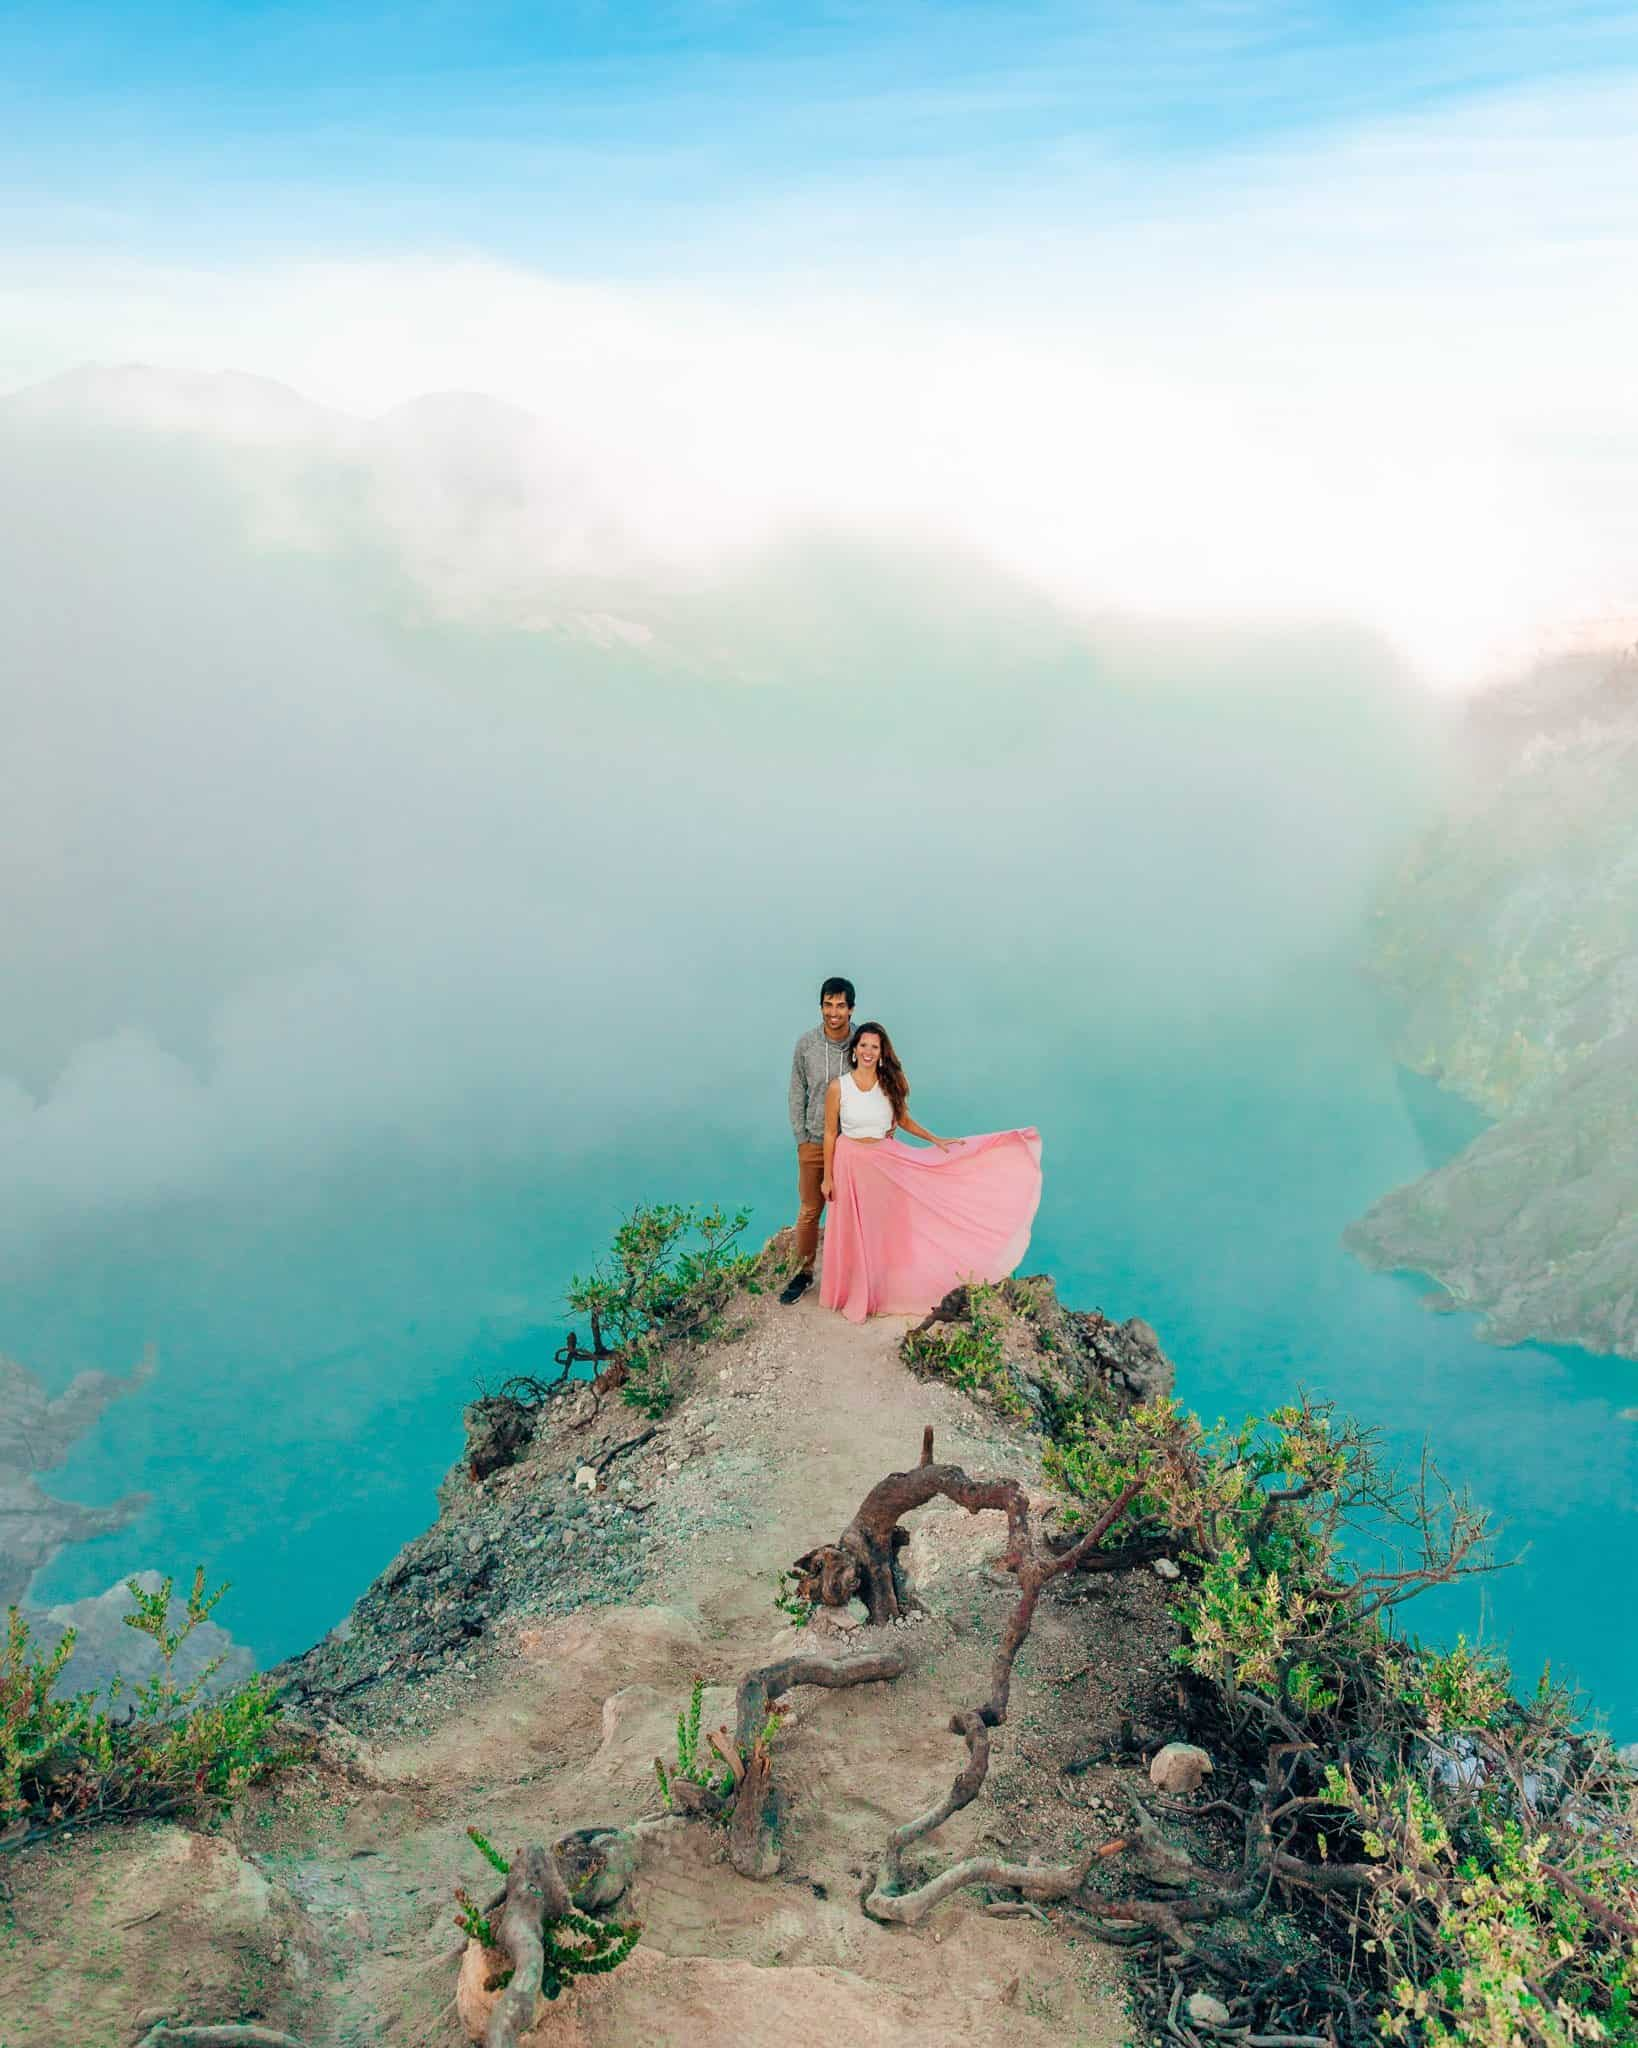 View of the Crater Lake on Mount Ijen, East Java - The Next Trip